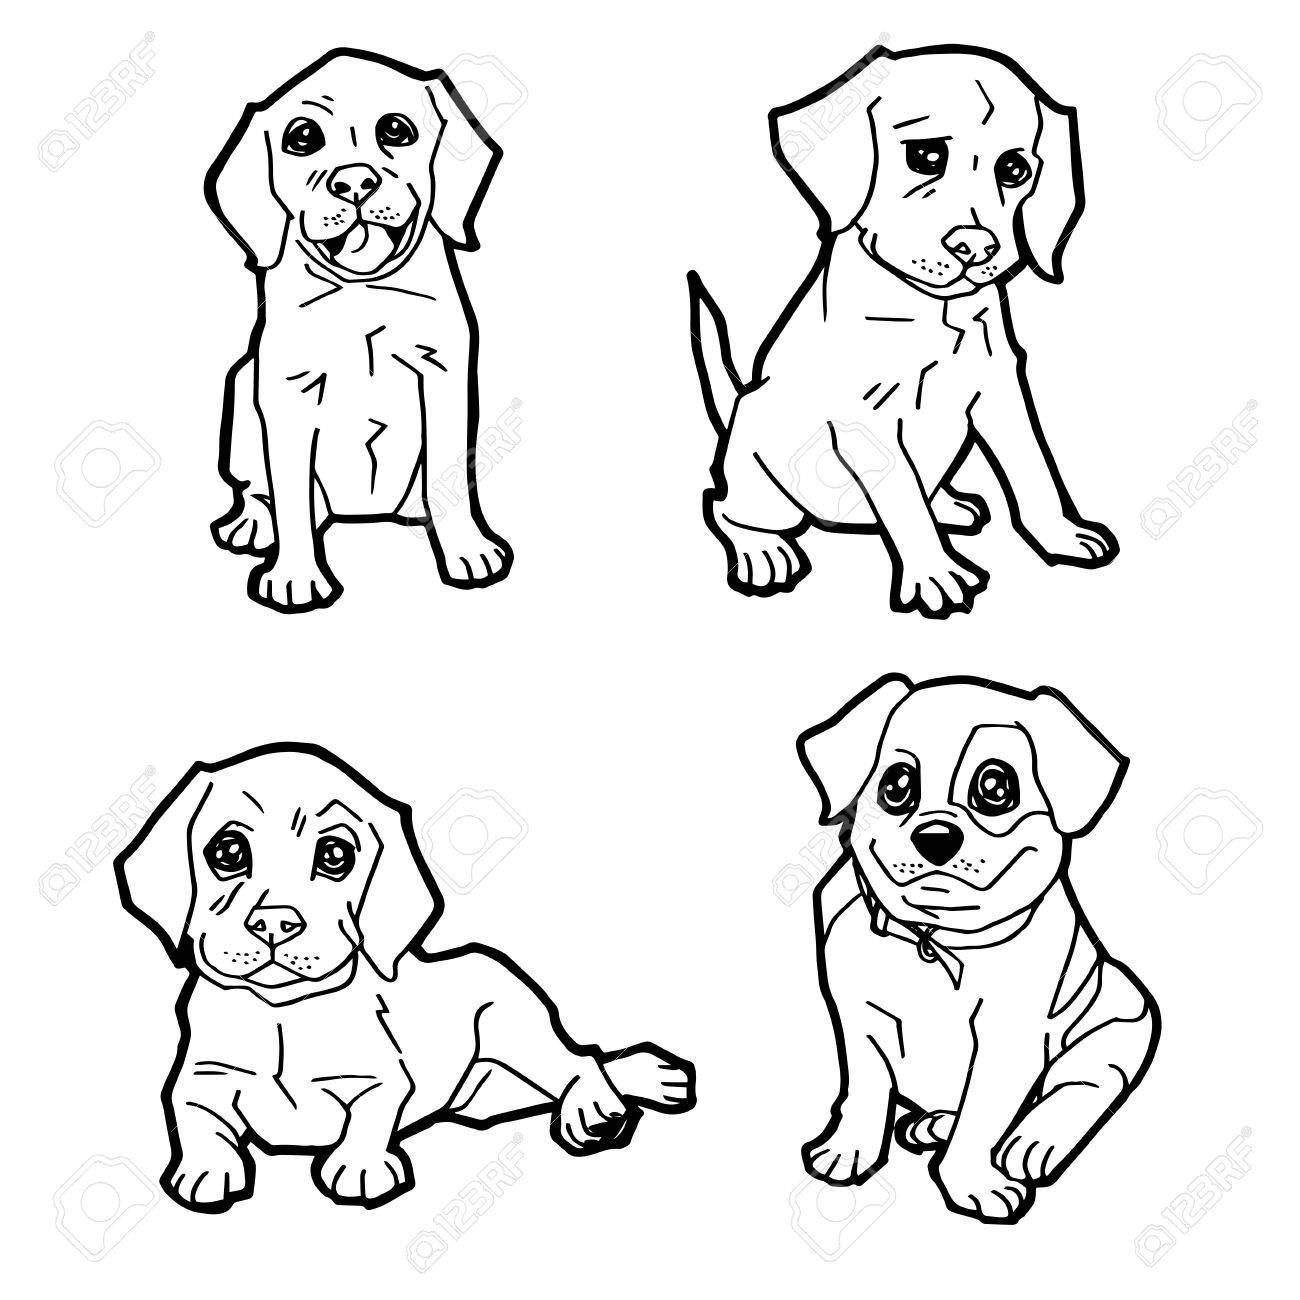 Set Of Cartoon Cute Dog Coloring Page Vector Illustration Stock